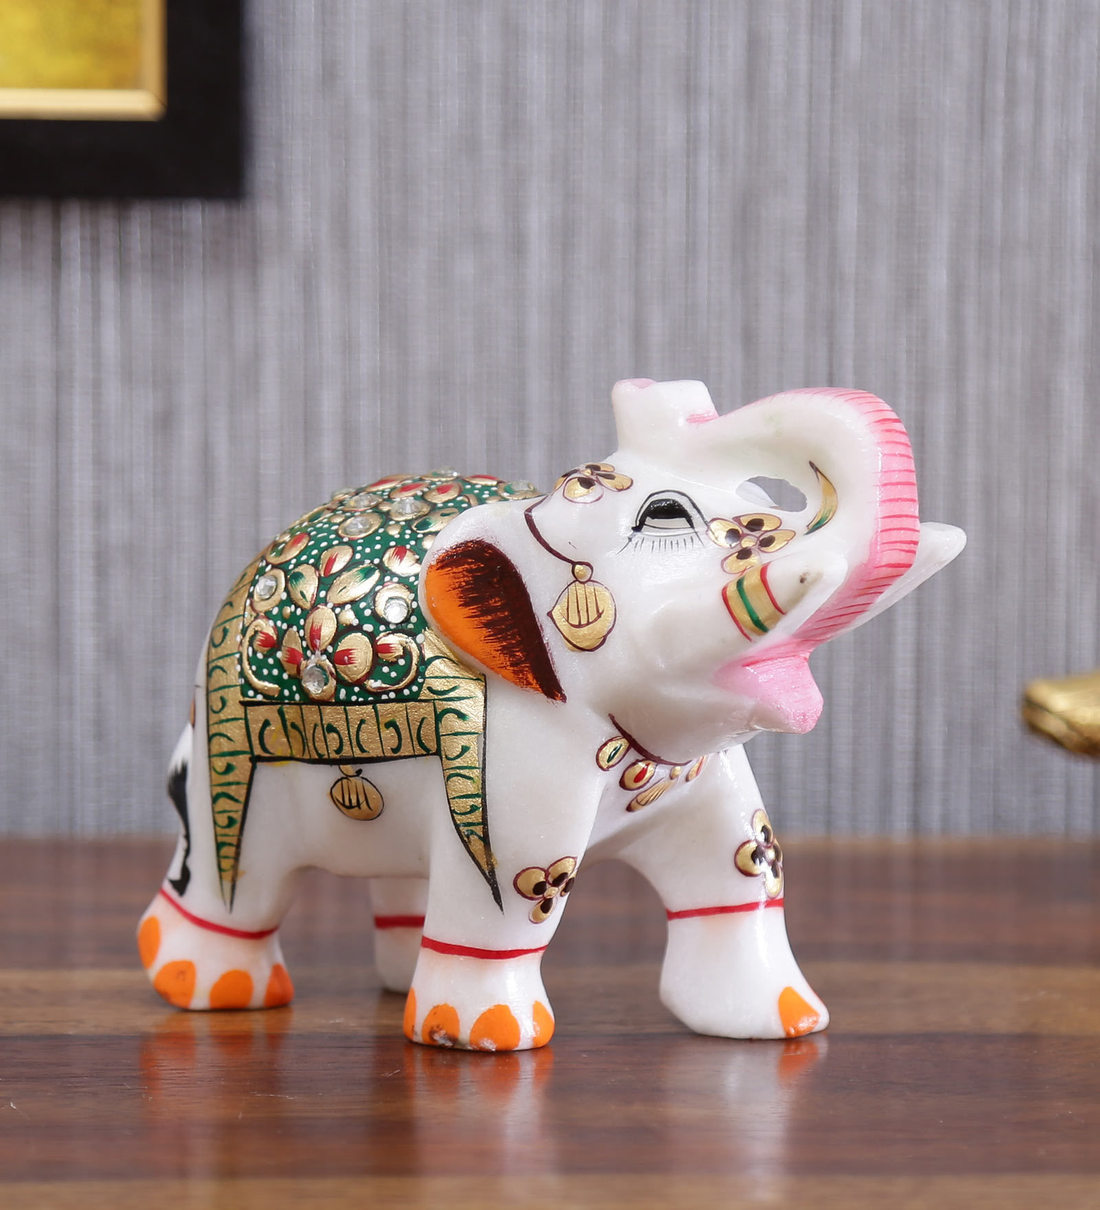 Buy Multicolor Marble Elephant Trunk Up Golden Emboss Green Figurine By Handicrafts Paradise Online Elephant Figurines Elephant Figurines Test Pepperfry Product